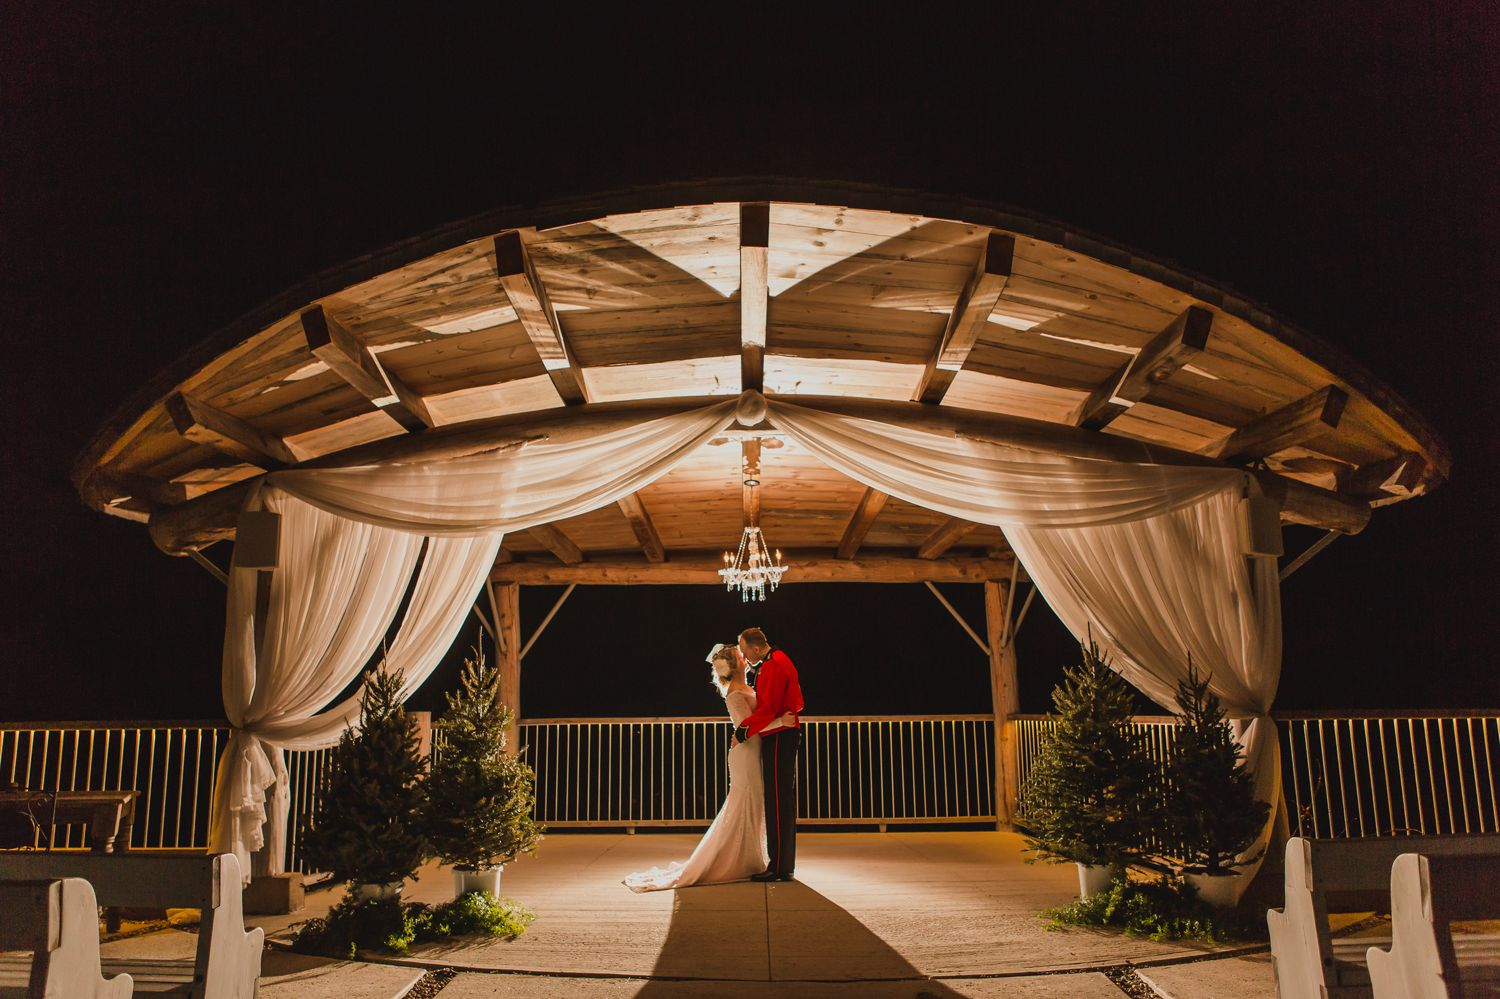 A night time portrait of the bride and groom at Le Belvedere in Wakefield Quebec